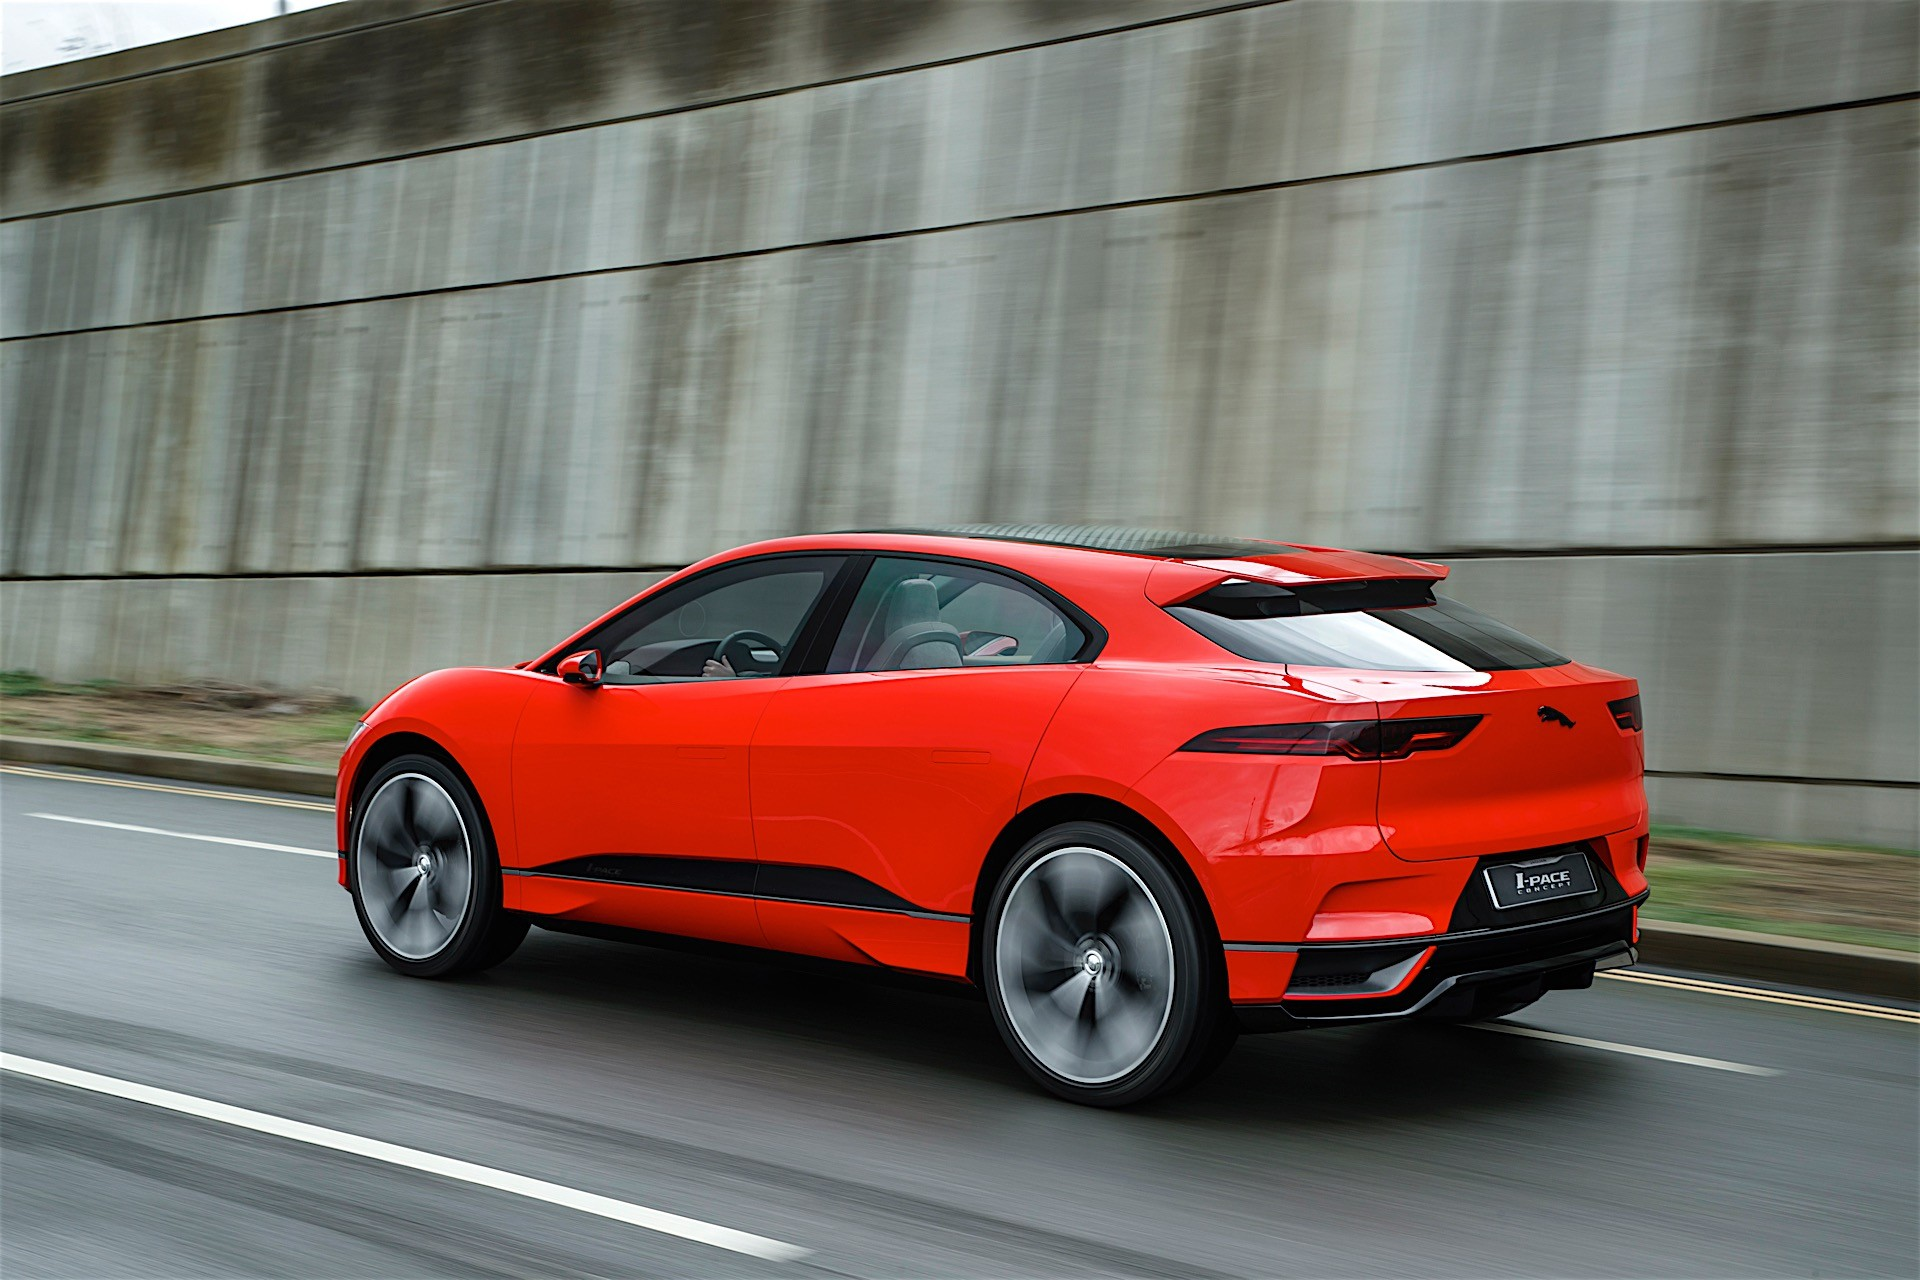 jaguar i pace electric suv already in production on sale in 2018 in the u s autoevolution. Black Bedroom Furniture Sets. Home Design Ideas